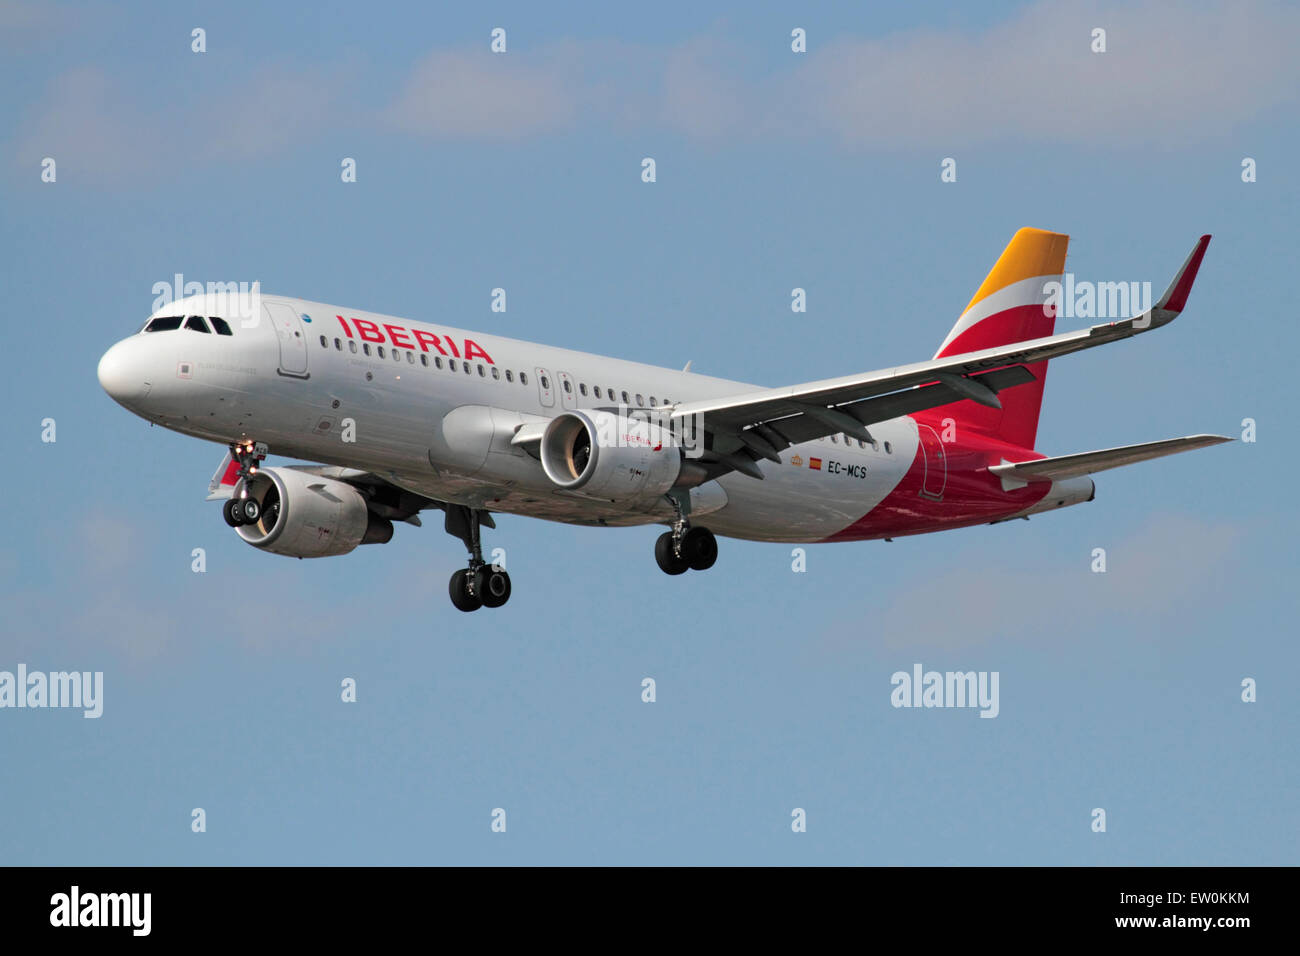 Iberia Airbus A320 passenger jet airplane with sharklets (winglets) on approach. Modern civil aviation. - Stock Image